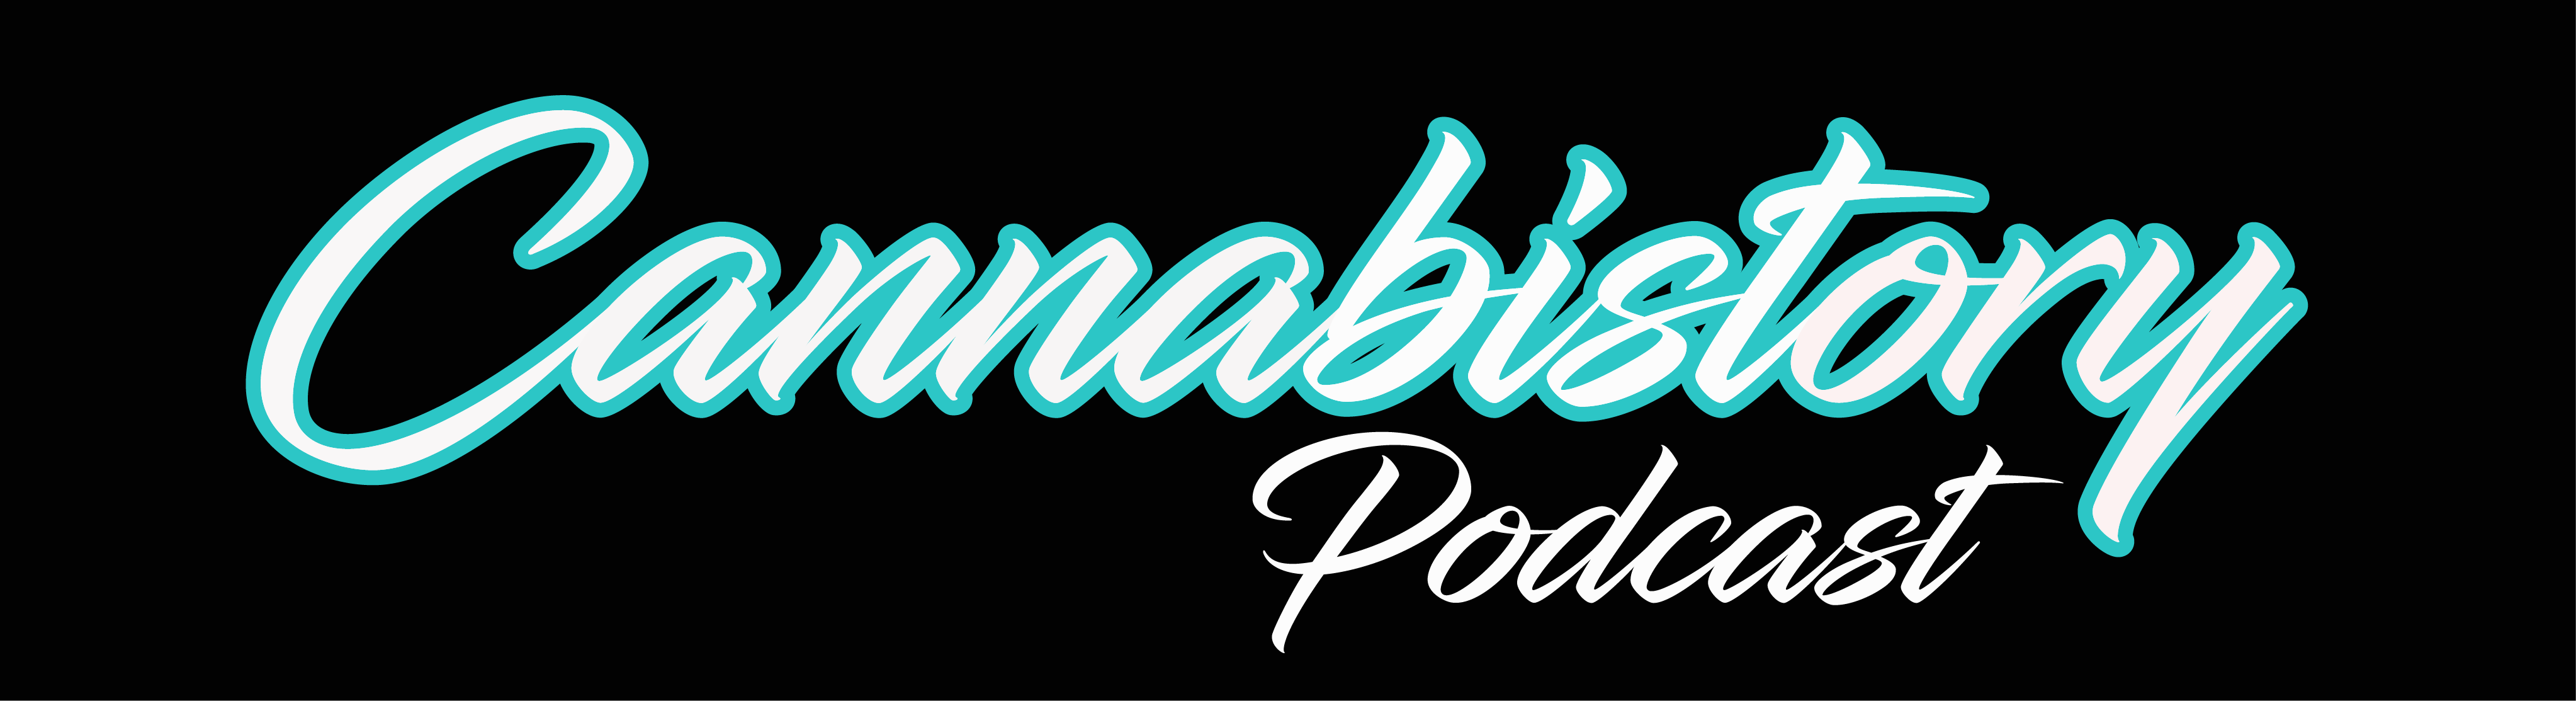 Cannabistory Podcast